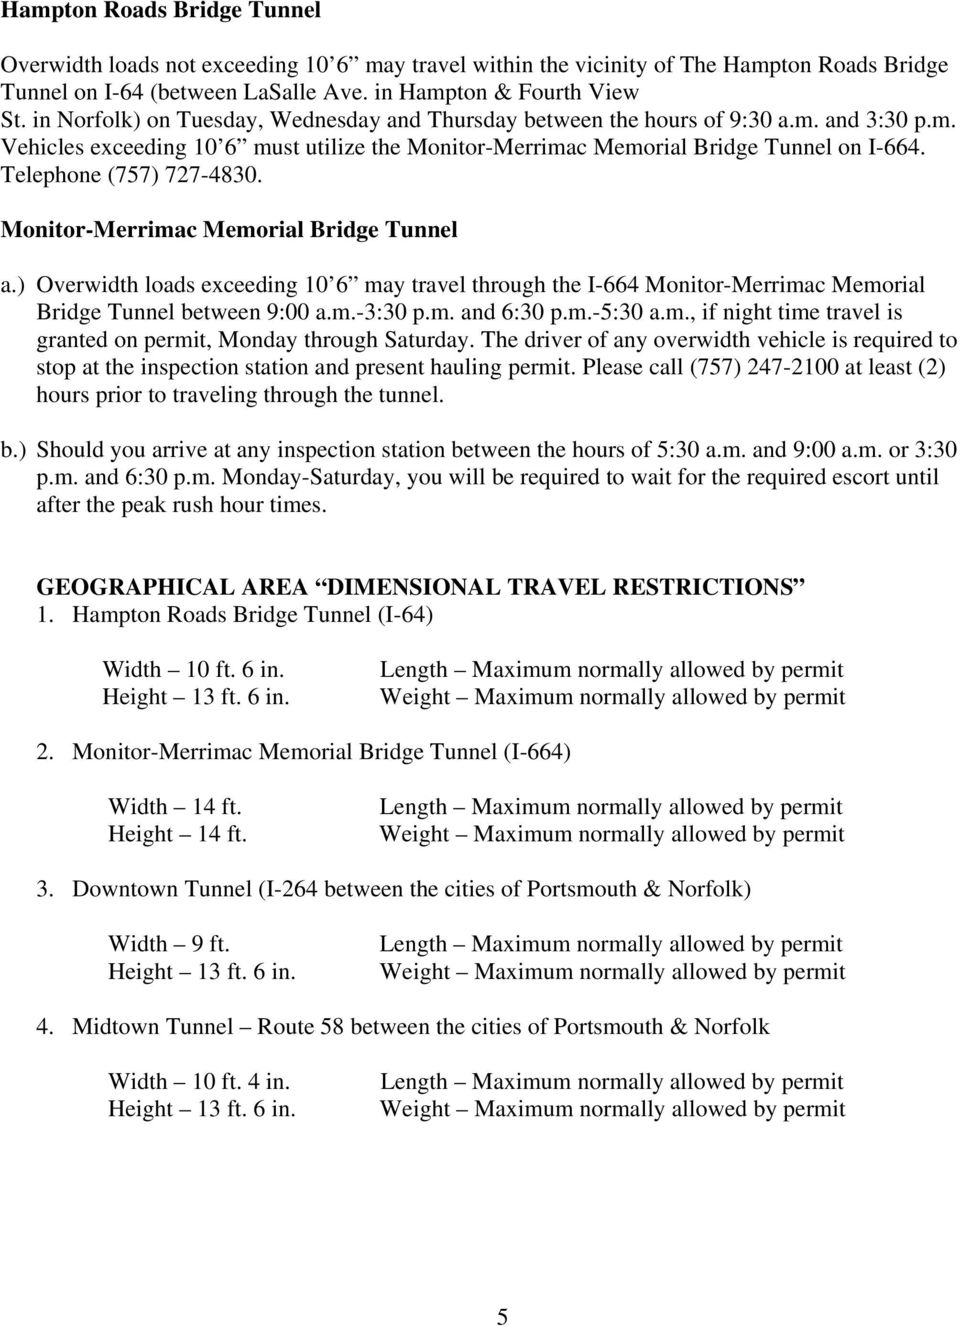 Telephone (757) 727-4830. Monitor-Merrimac Memorial Bridge Tunnel a.) Overwidth loads exceeding 10 6 may travel through the I-664 Monitor-Merrimac Memorial Bridge Tunnel between 9:00 a.m.-3:30 p.m. and 6:30 p.